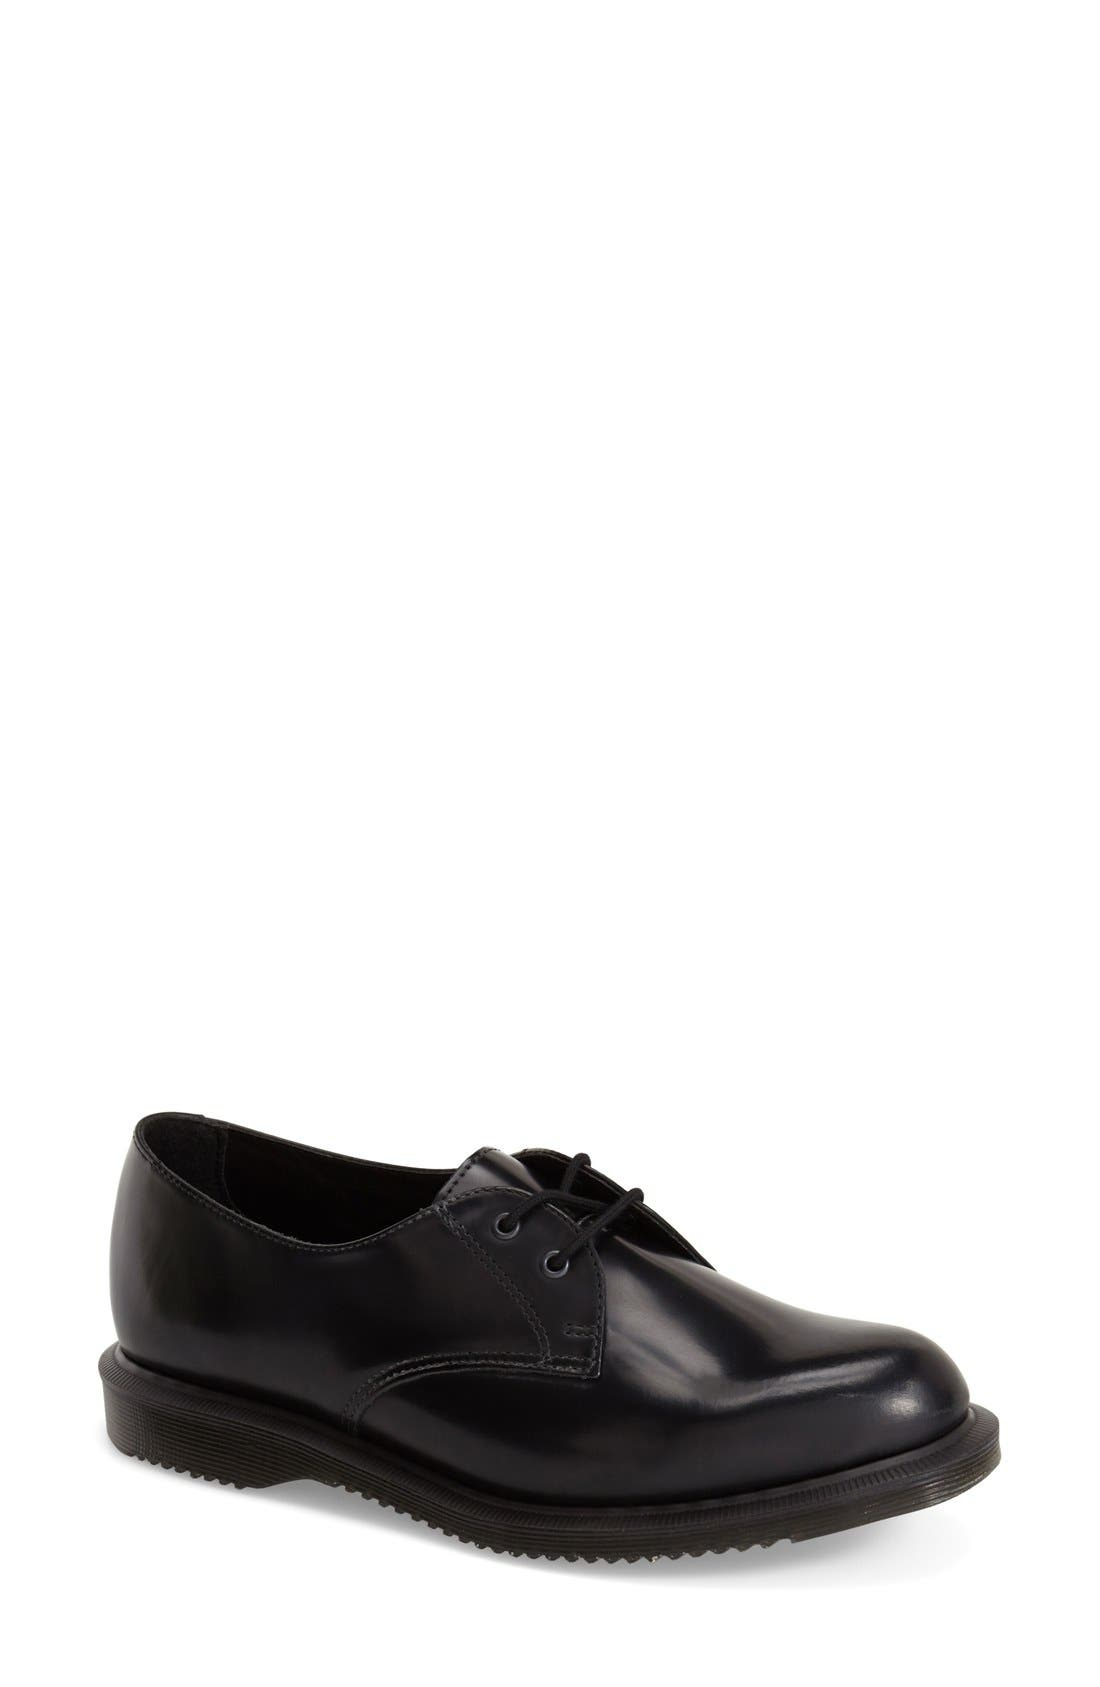 Main Image - Dr. Martens 'Brook' Oxford Flat (Women)